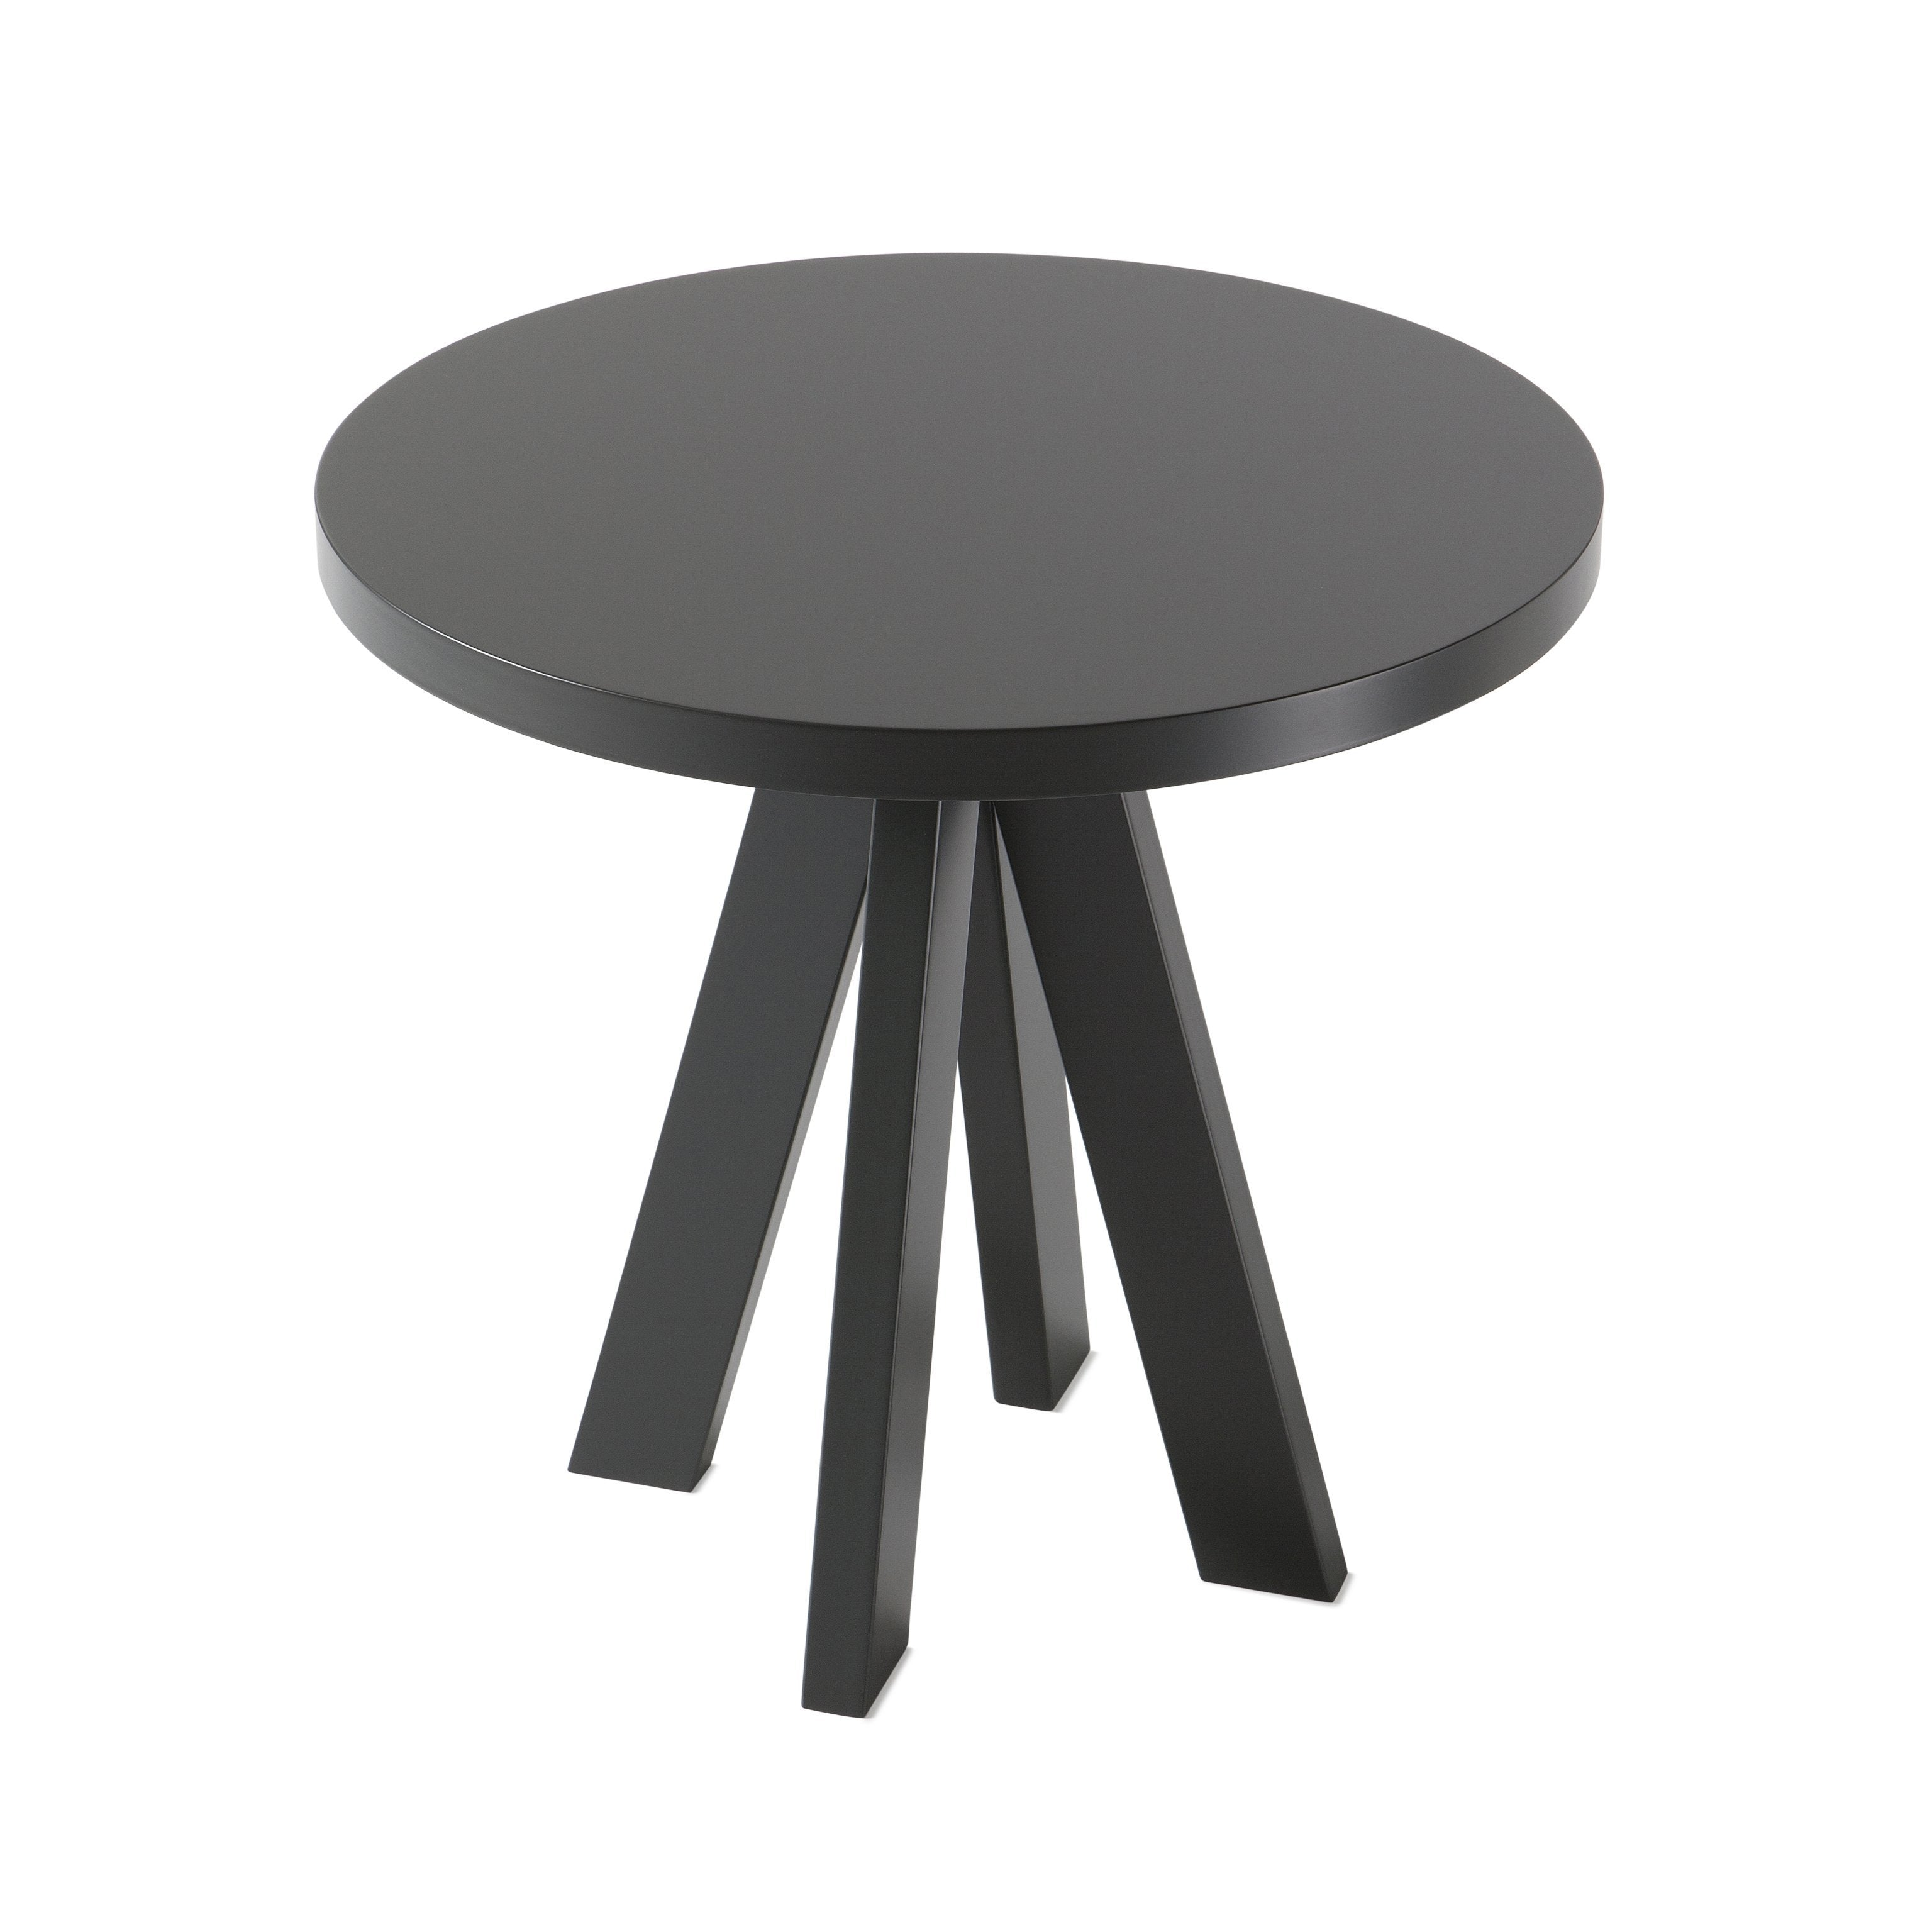 A.ngelo Coffee Table: Traffic Grey